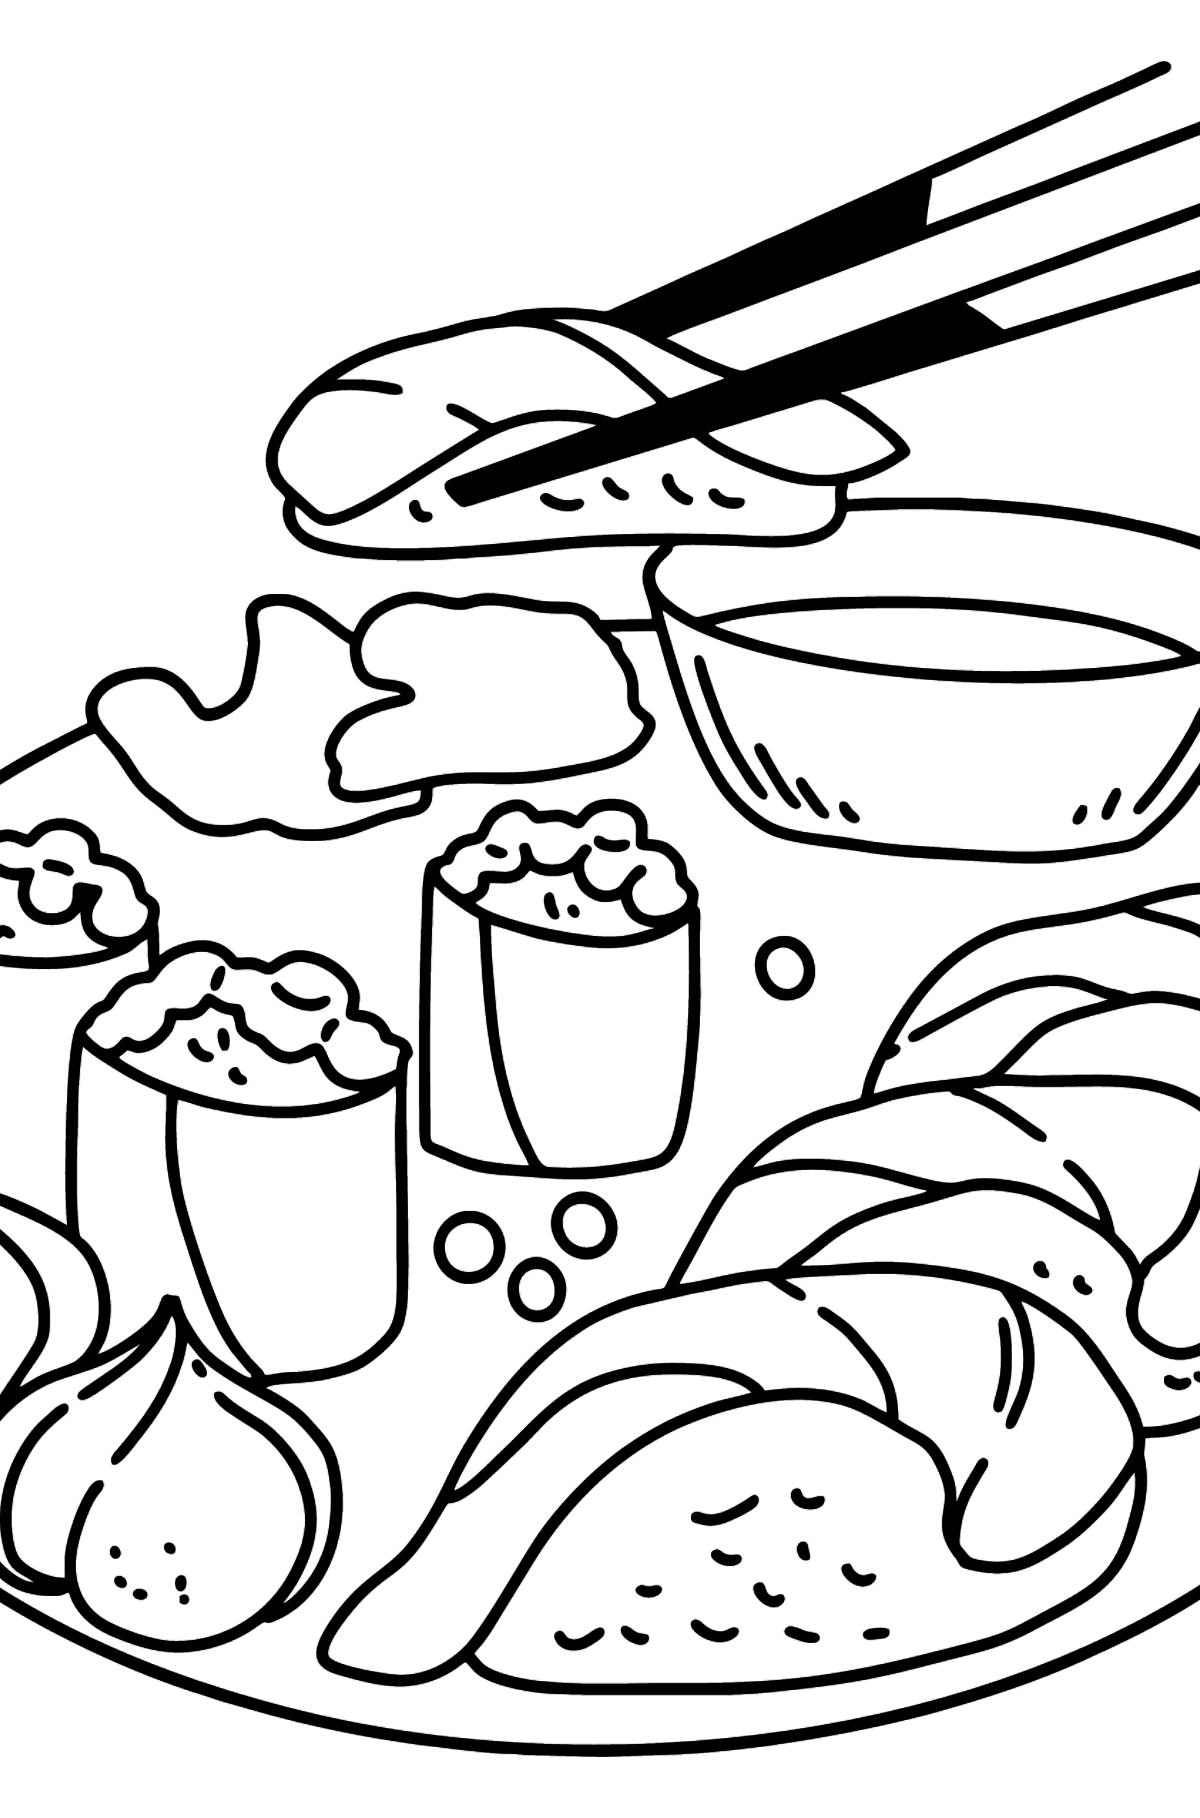 Sushi coloring page - Coloring Pages for Kids